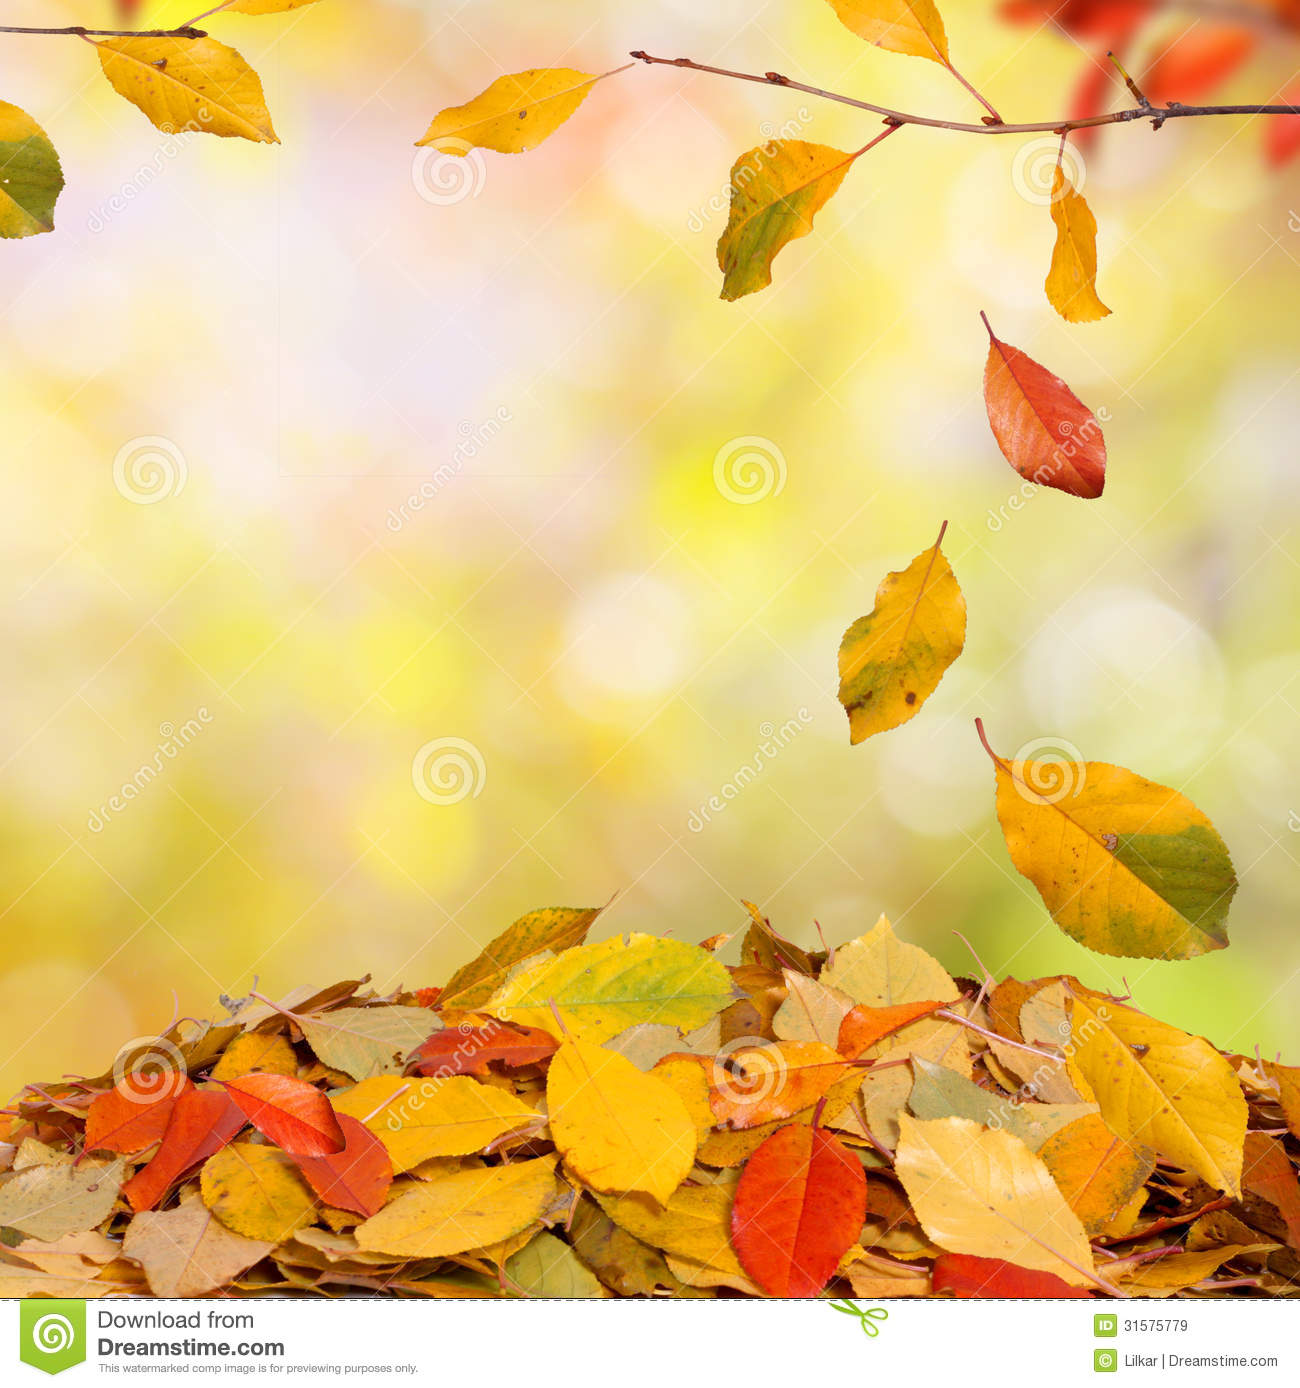 Fall Leaves Wallpaper Border Autumn Background Stock Image Image Of Environment Fall